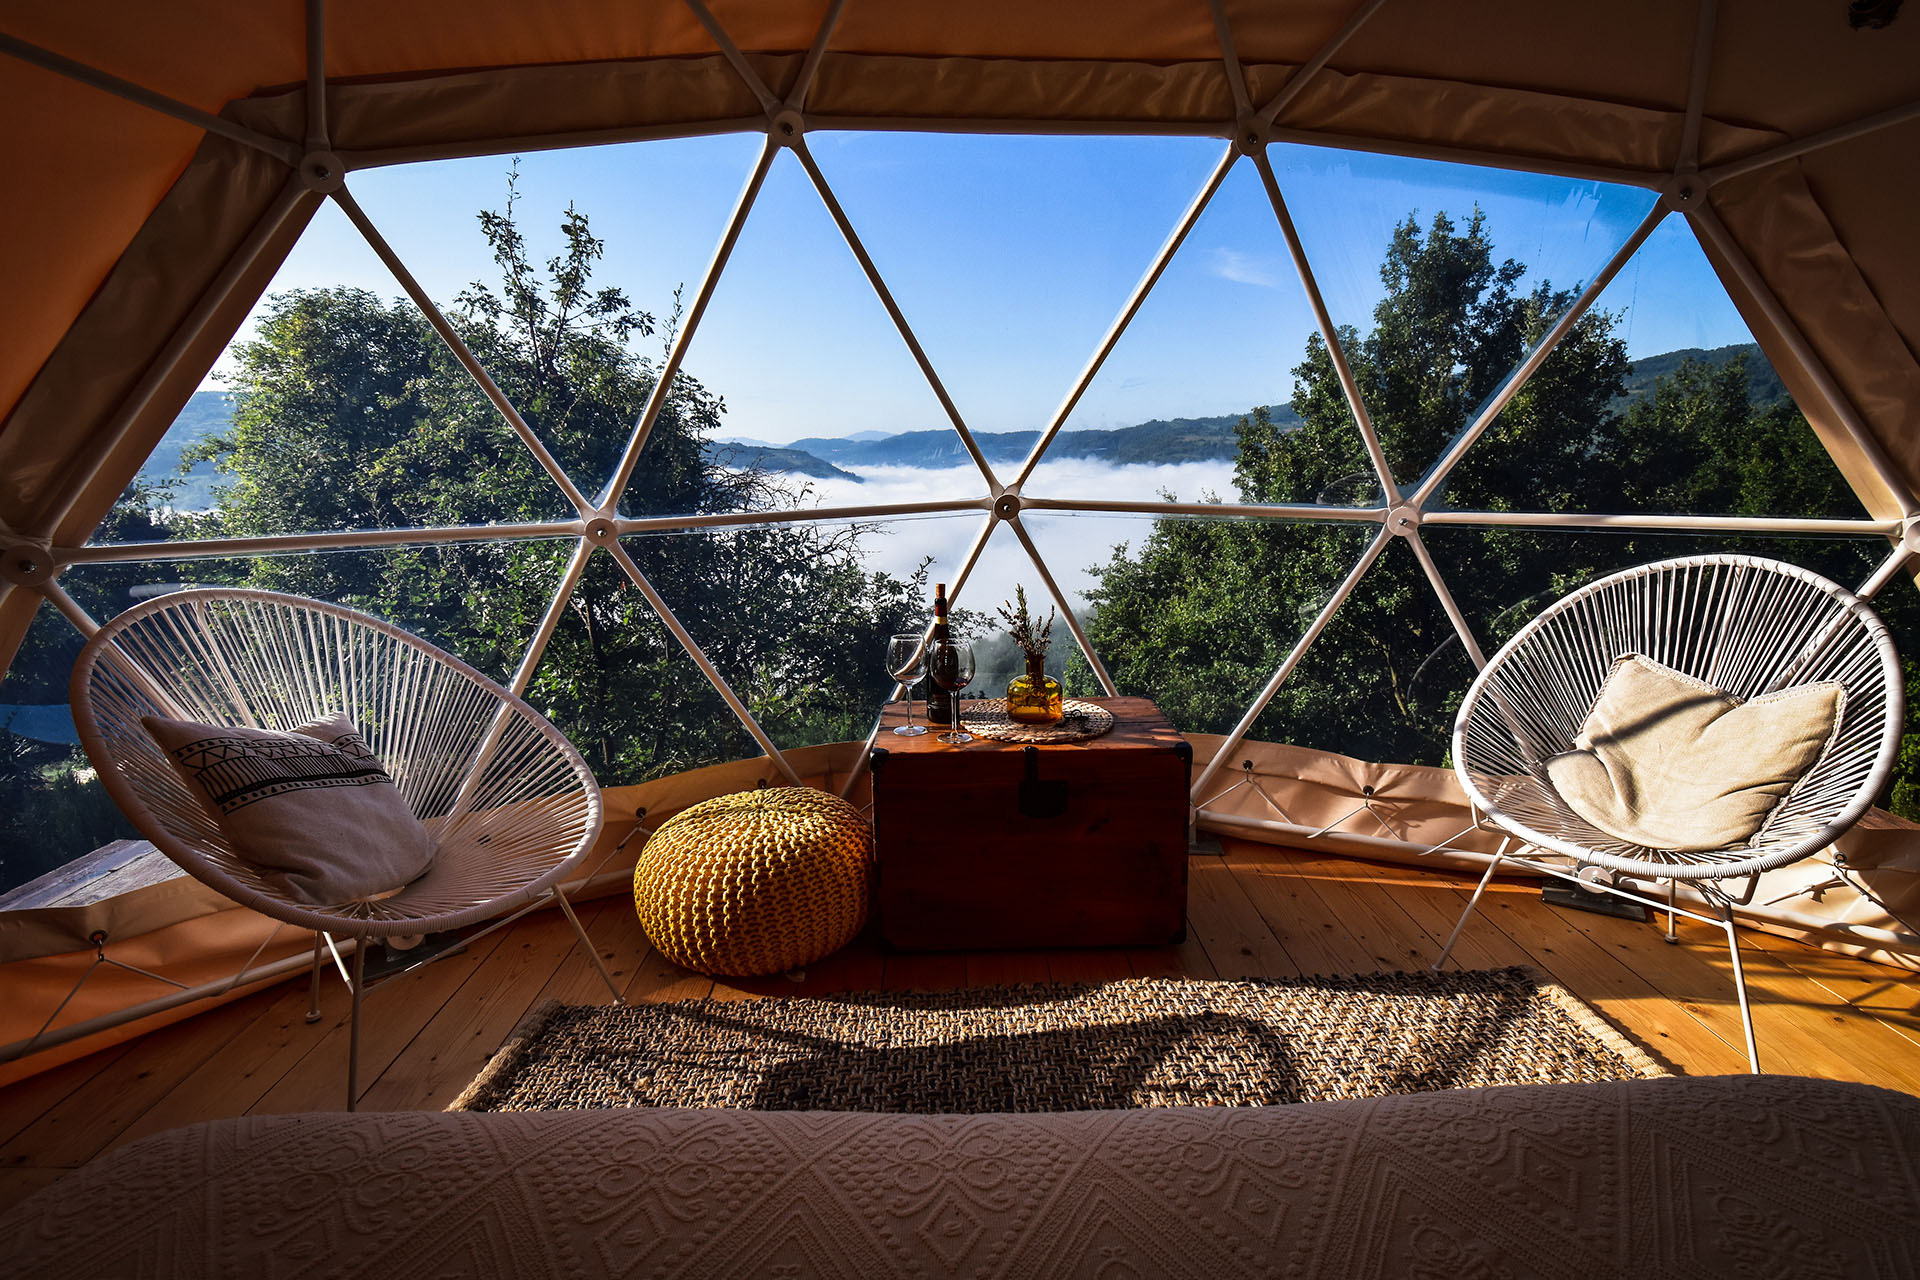 Interiors of the dome overlooking the landscape |Glamping| Resorts | STIRworld